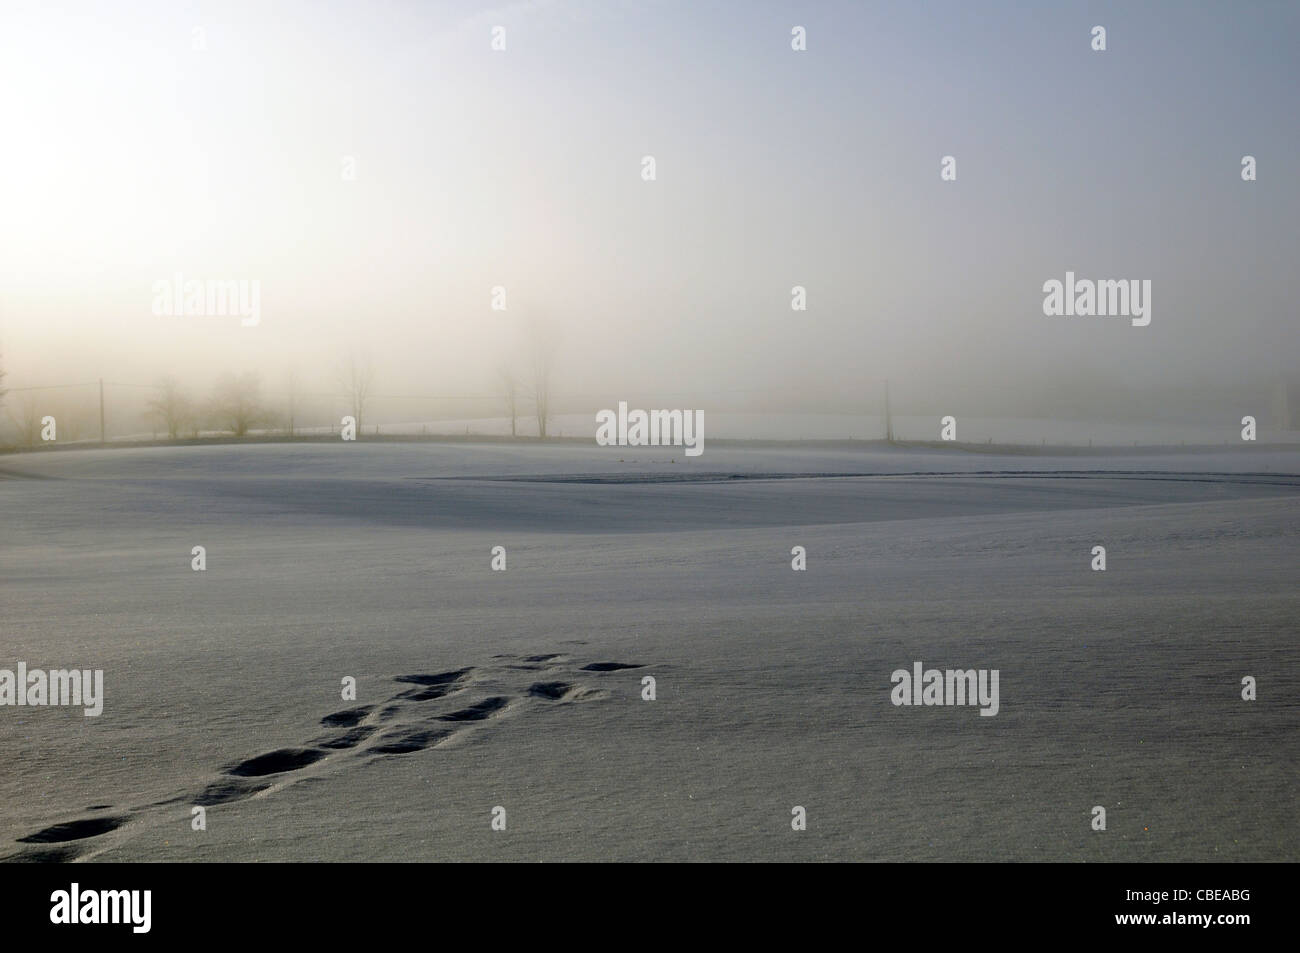 Footprints or animal tracks across a snowy field leading nowhere - Stock Image